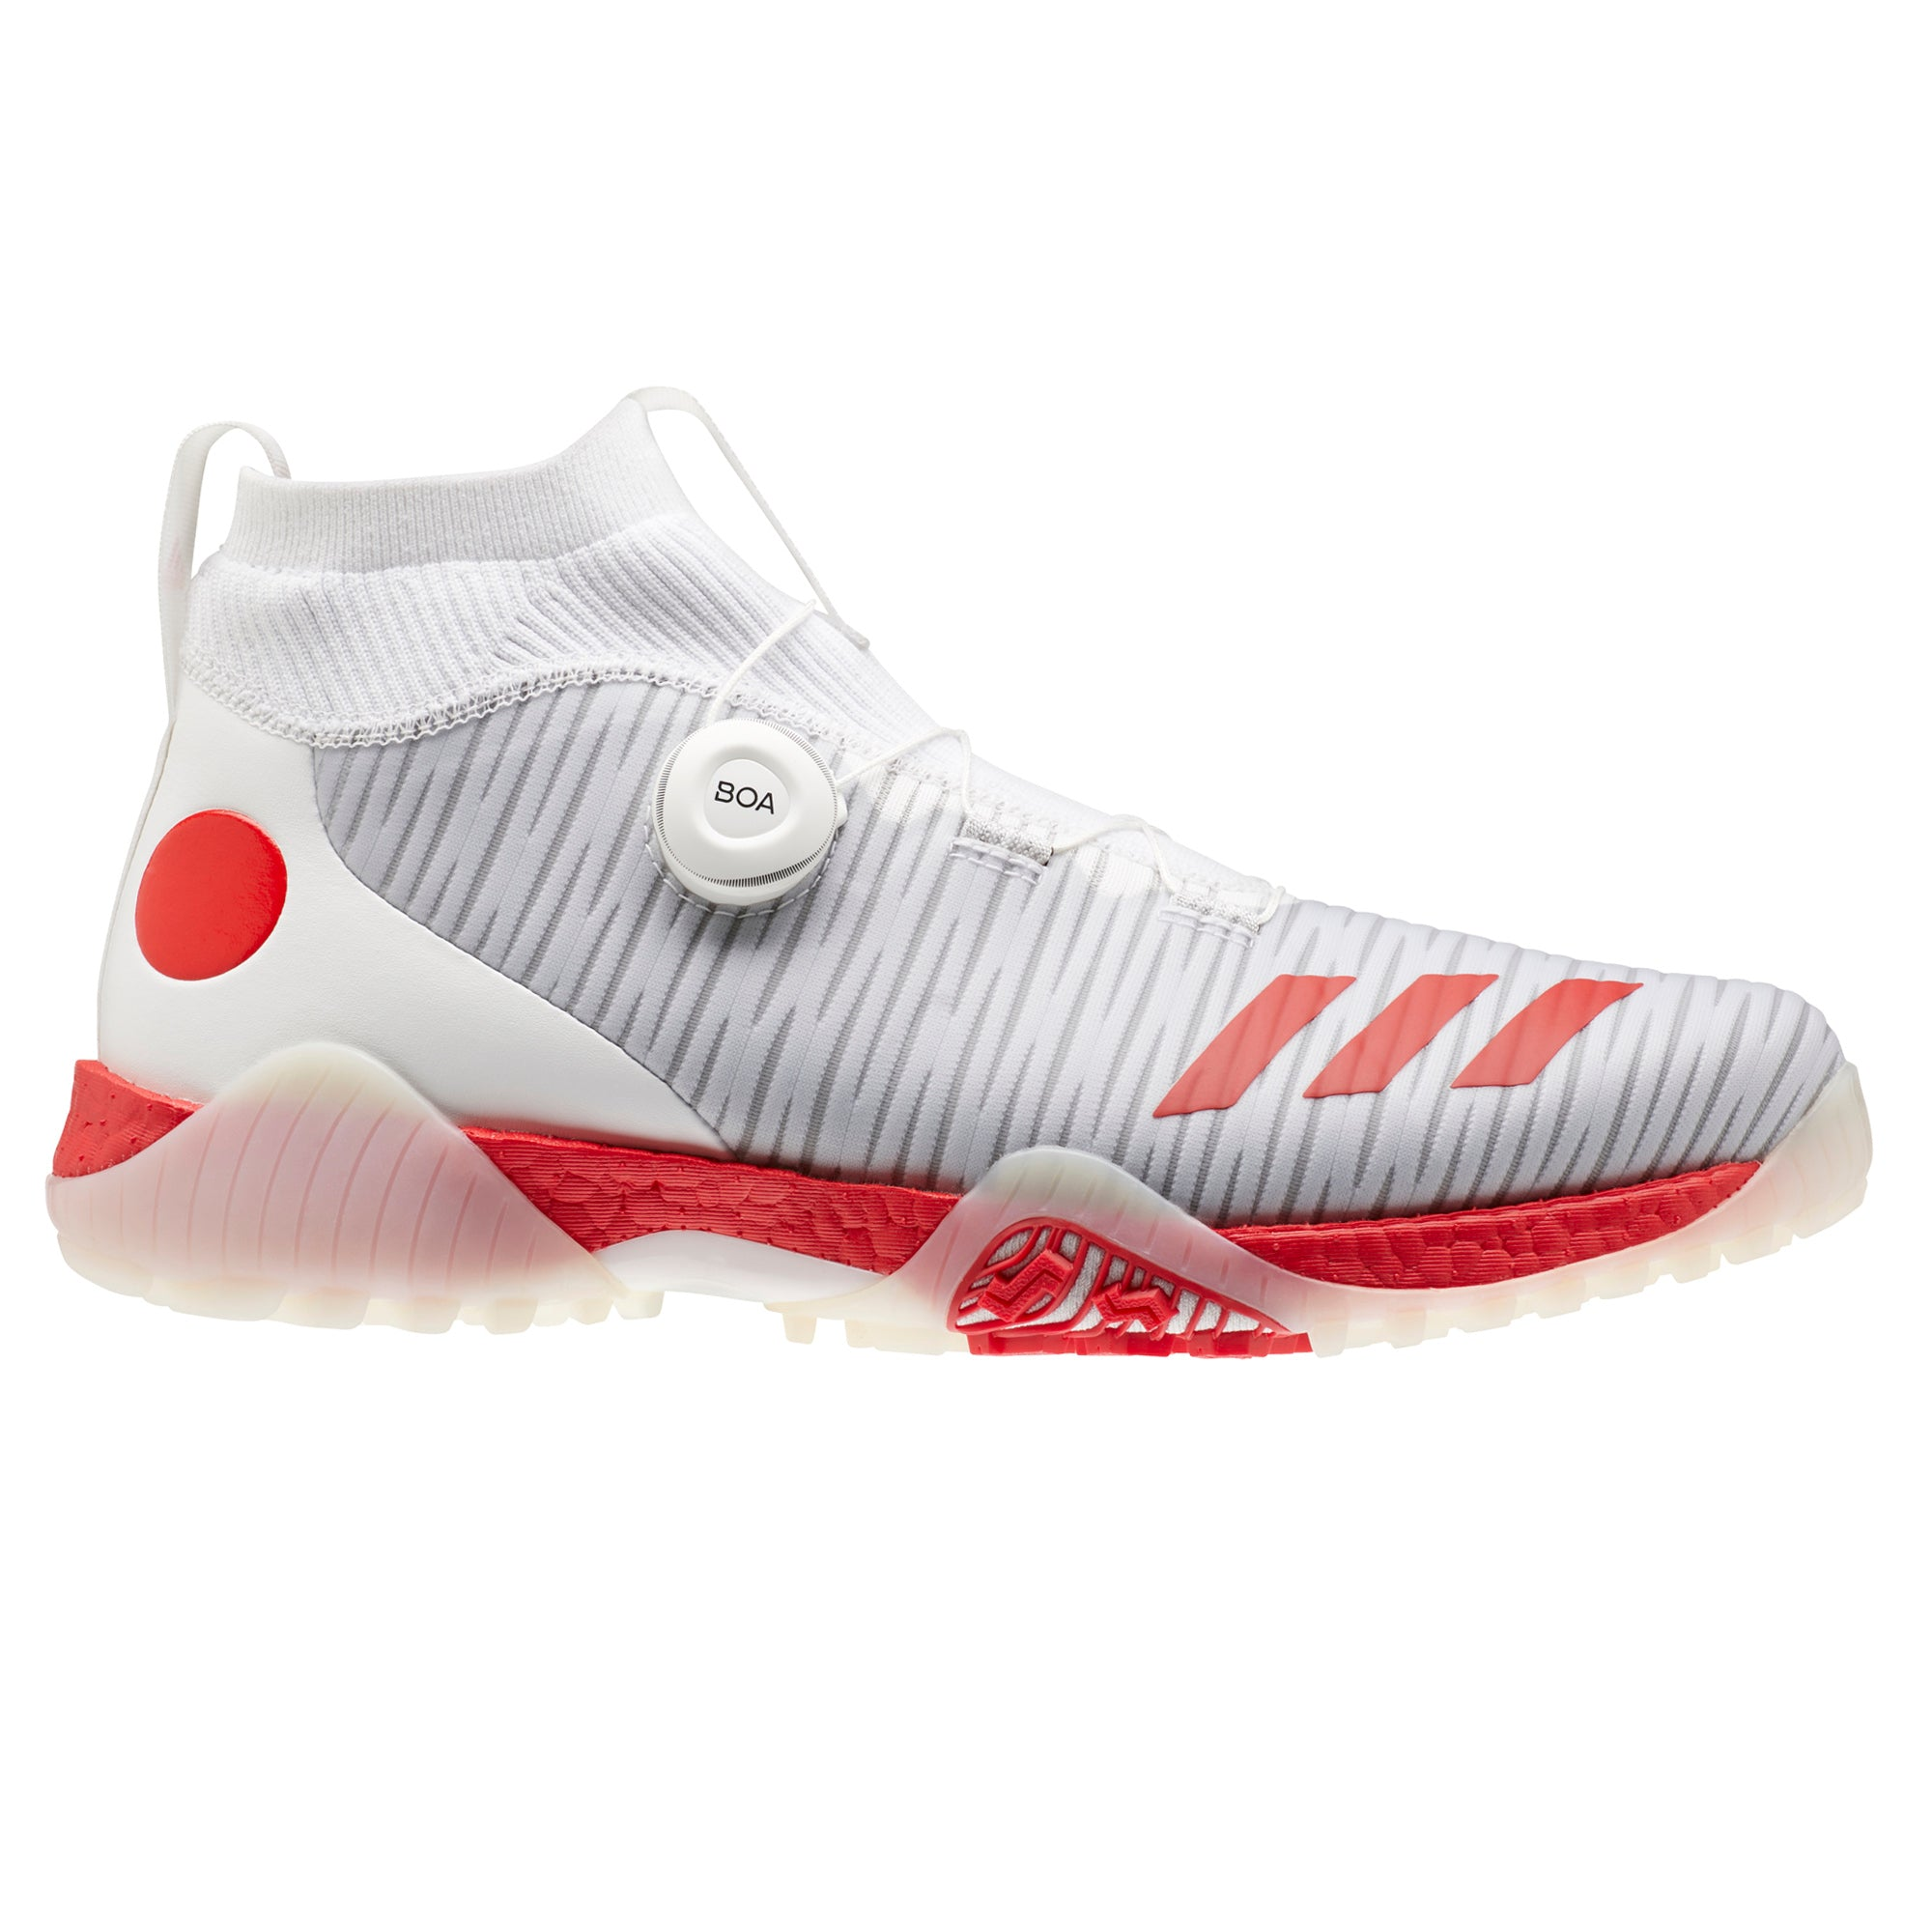 adidas CODECHAOS BOA LE Golf Shoes